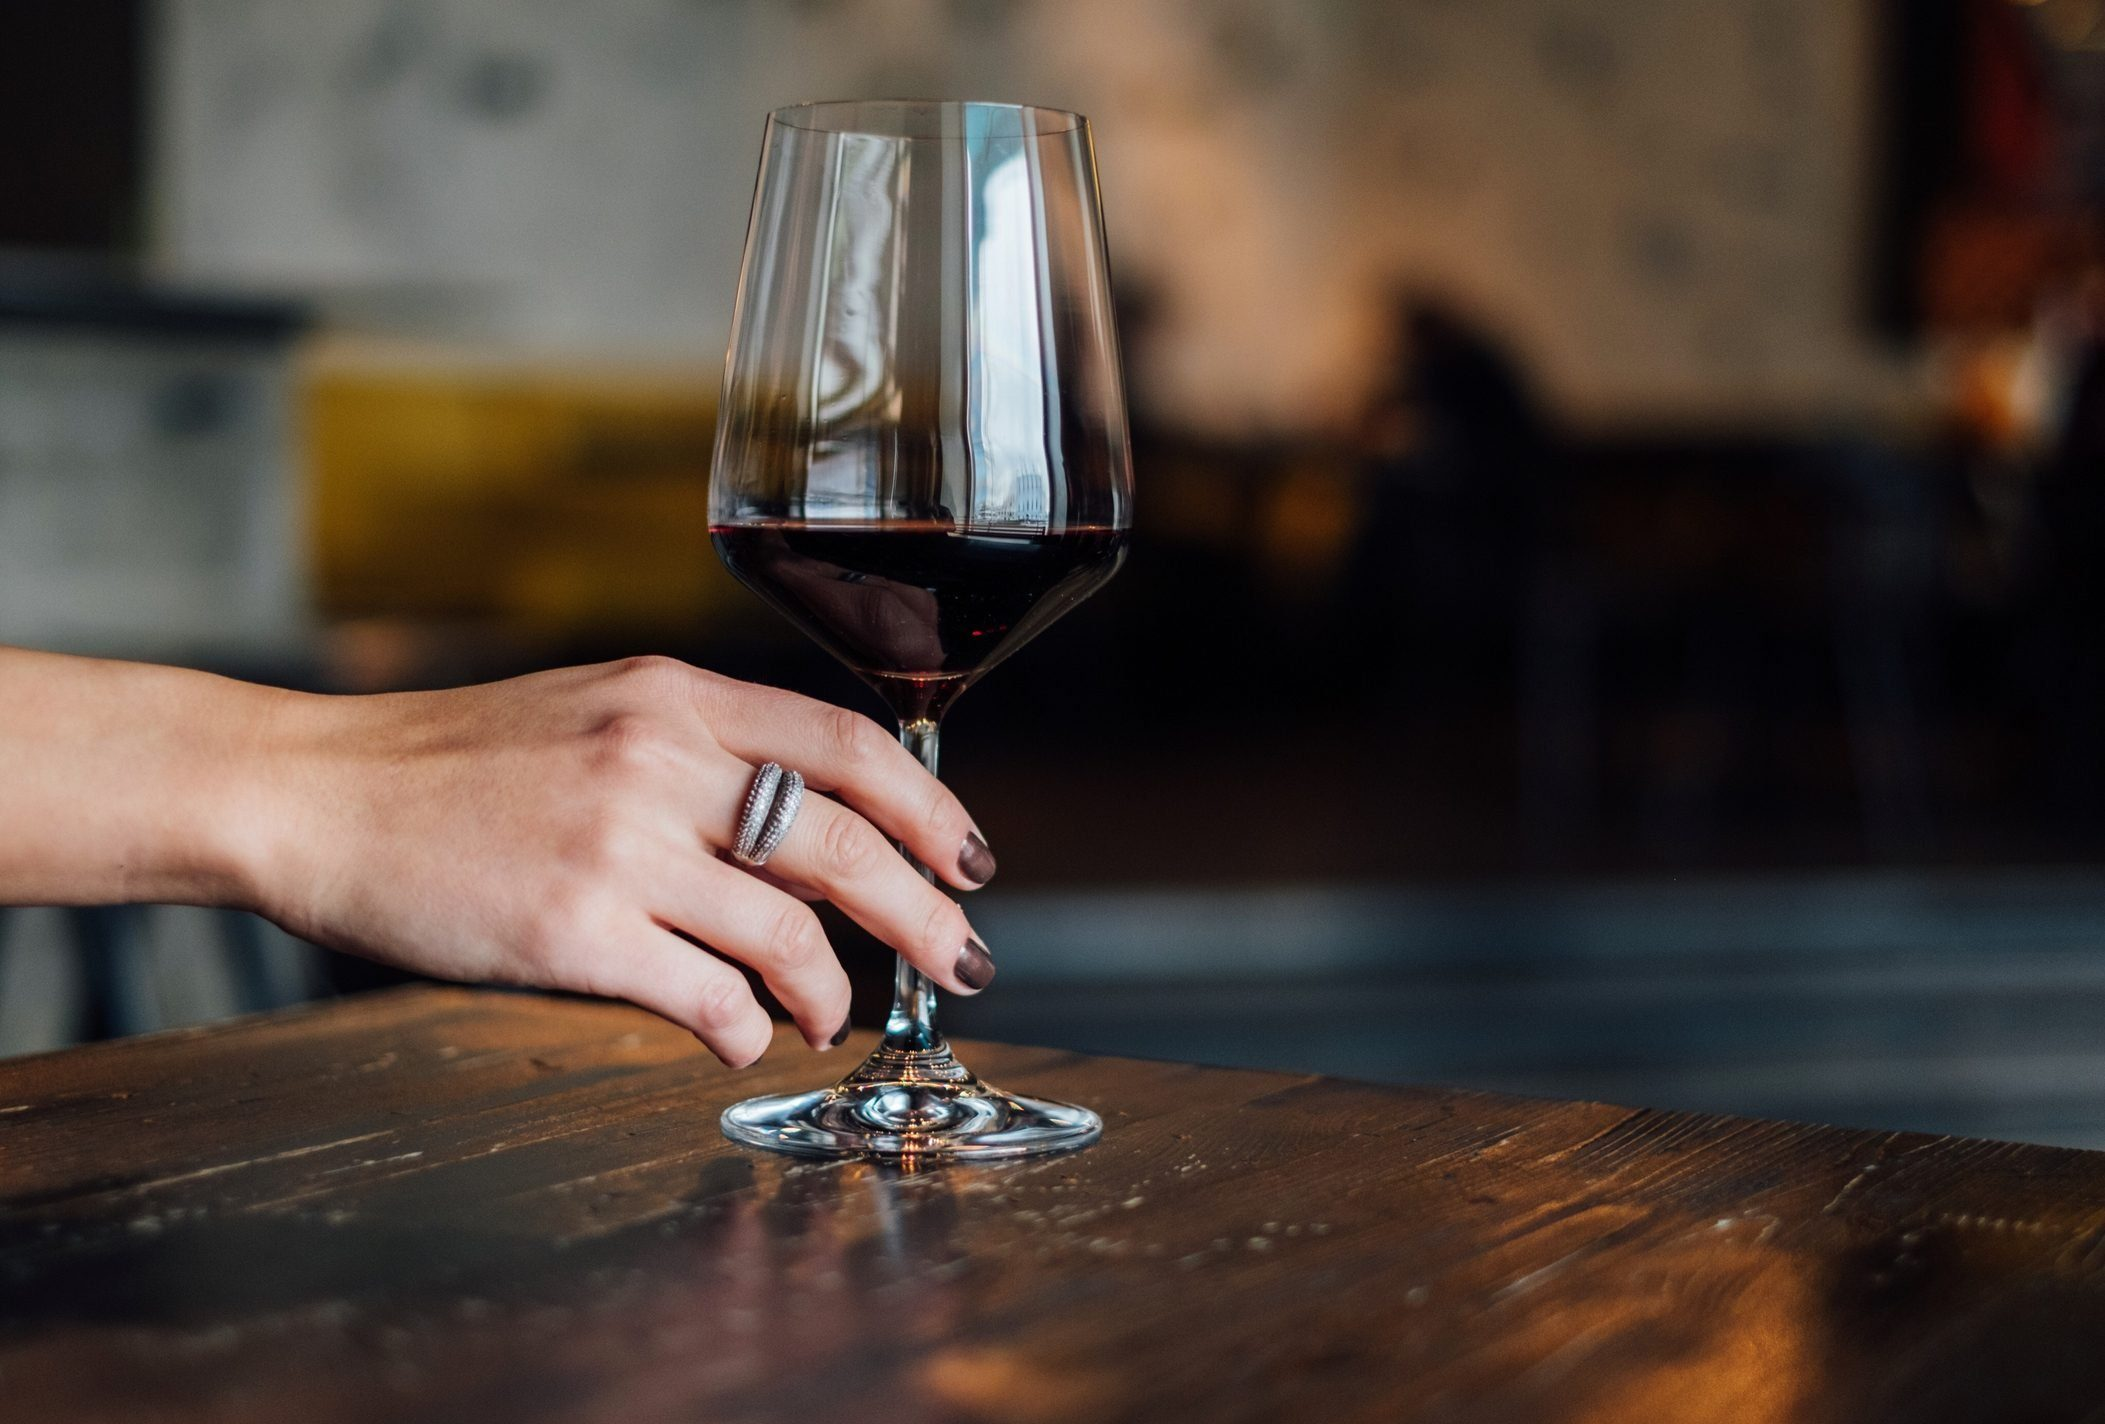 Close-Up Of Hand Holding wine glass On Table